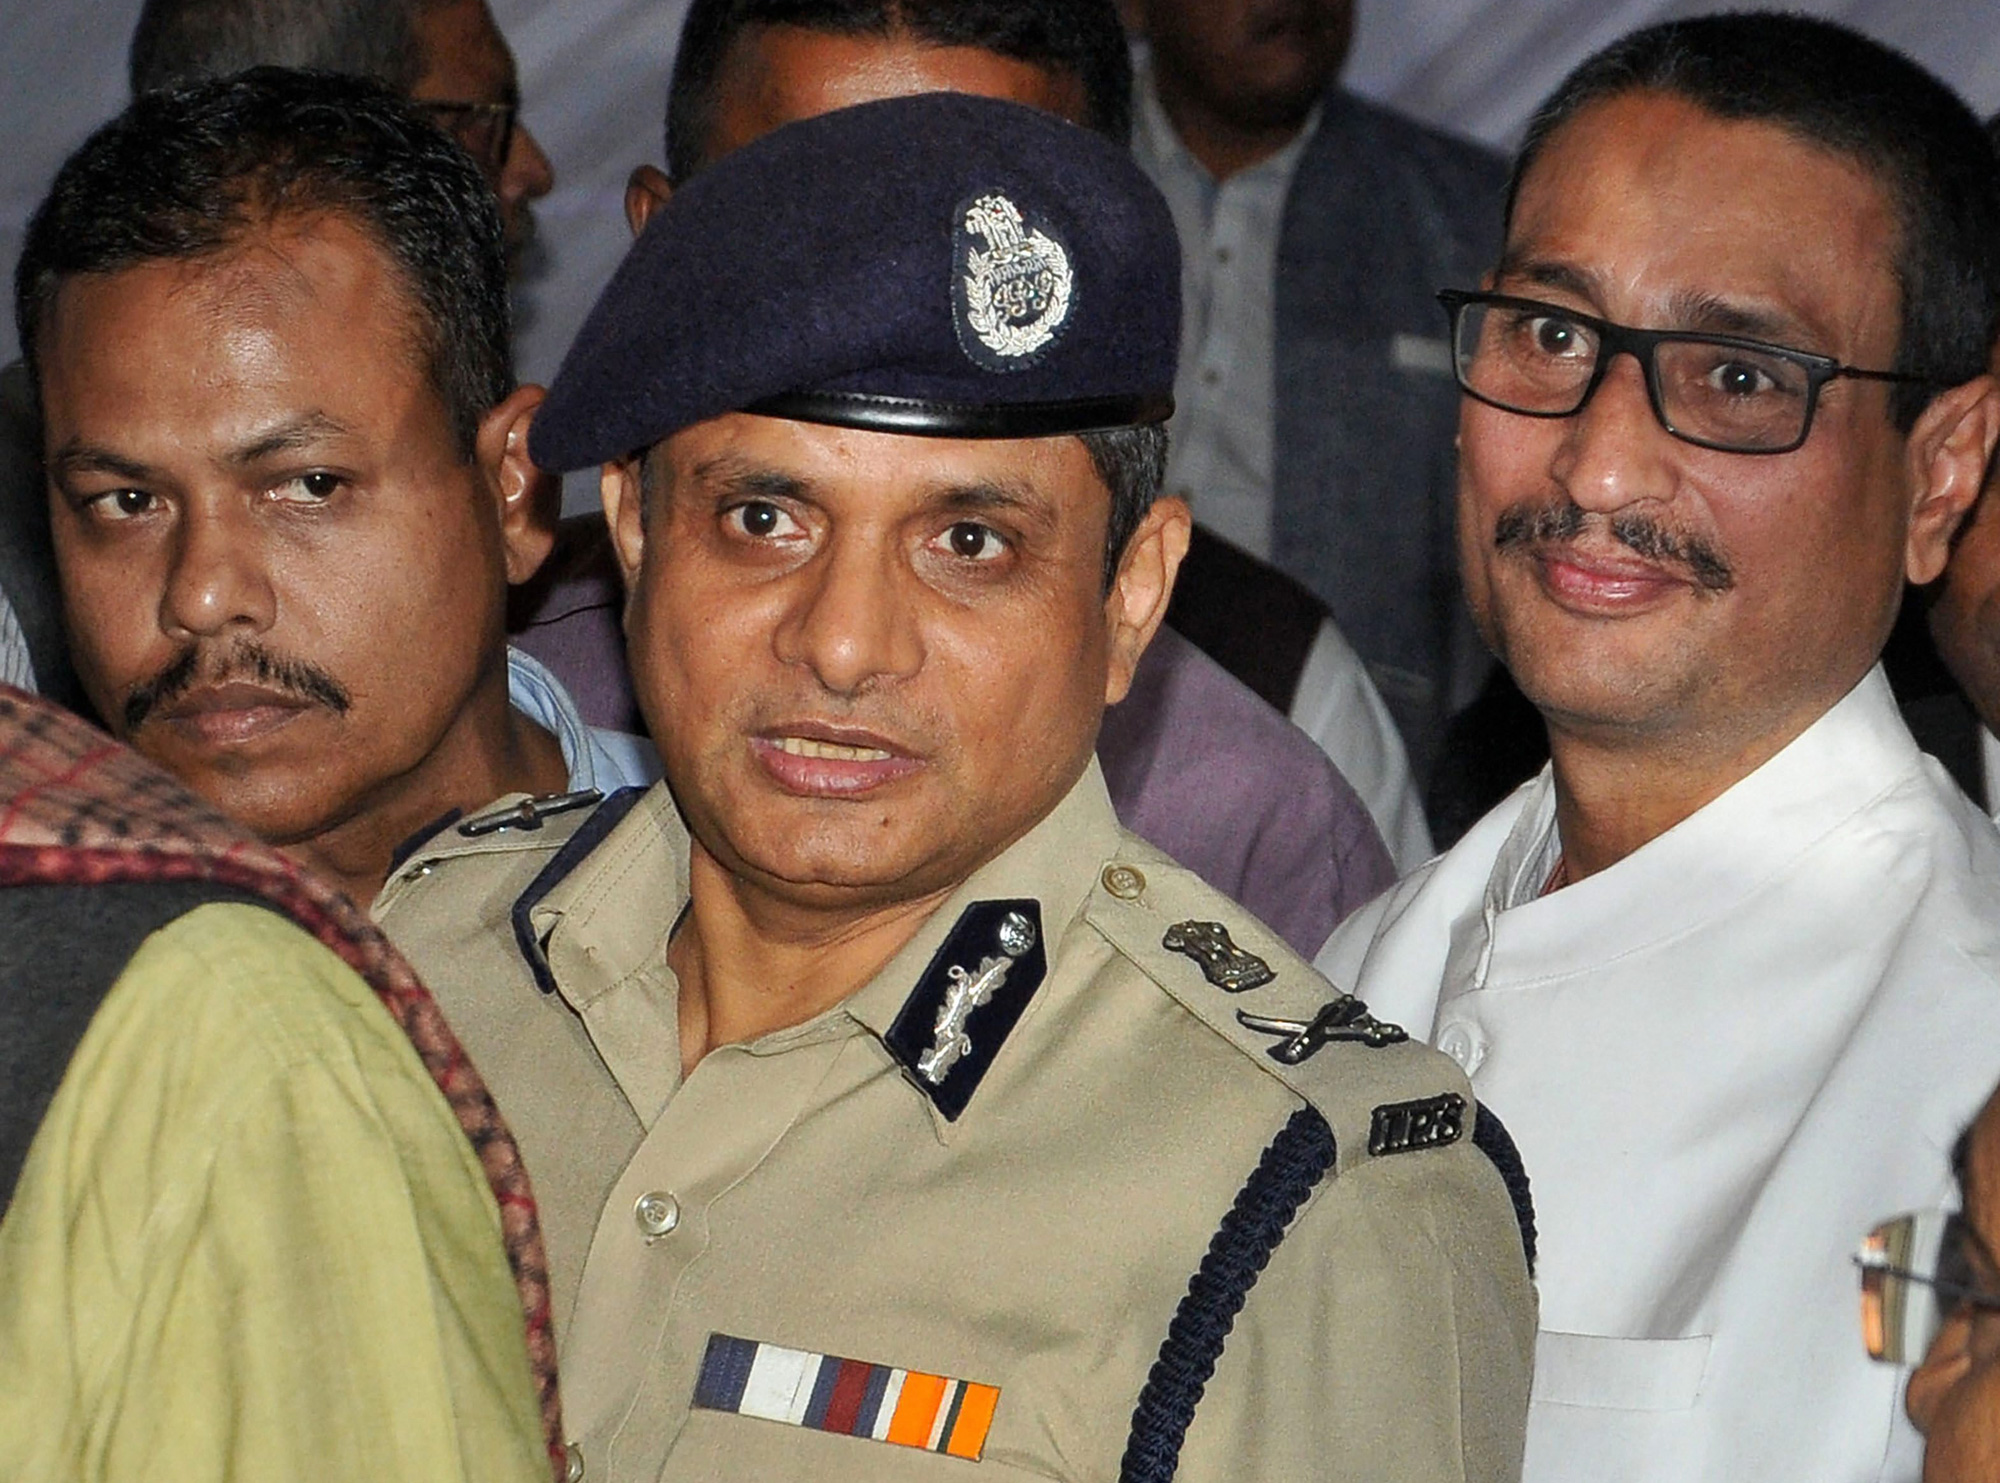 Calcutta Police Commissioner Rajeev Kumar (center) leaves the venue of West Bengal Chief Minister Mamata Banerjee's sit-in in Calcutta on Tuesday.